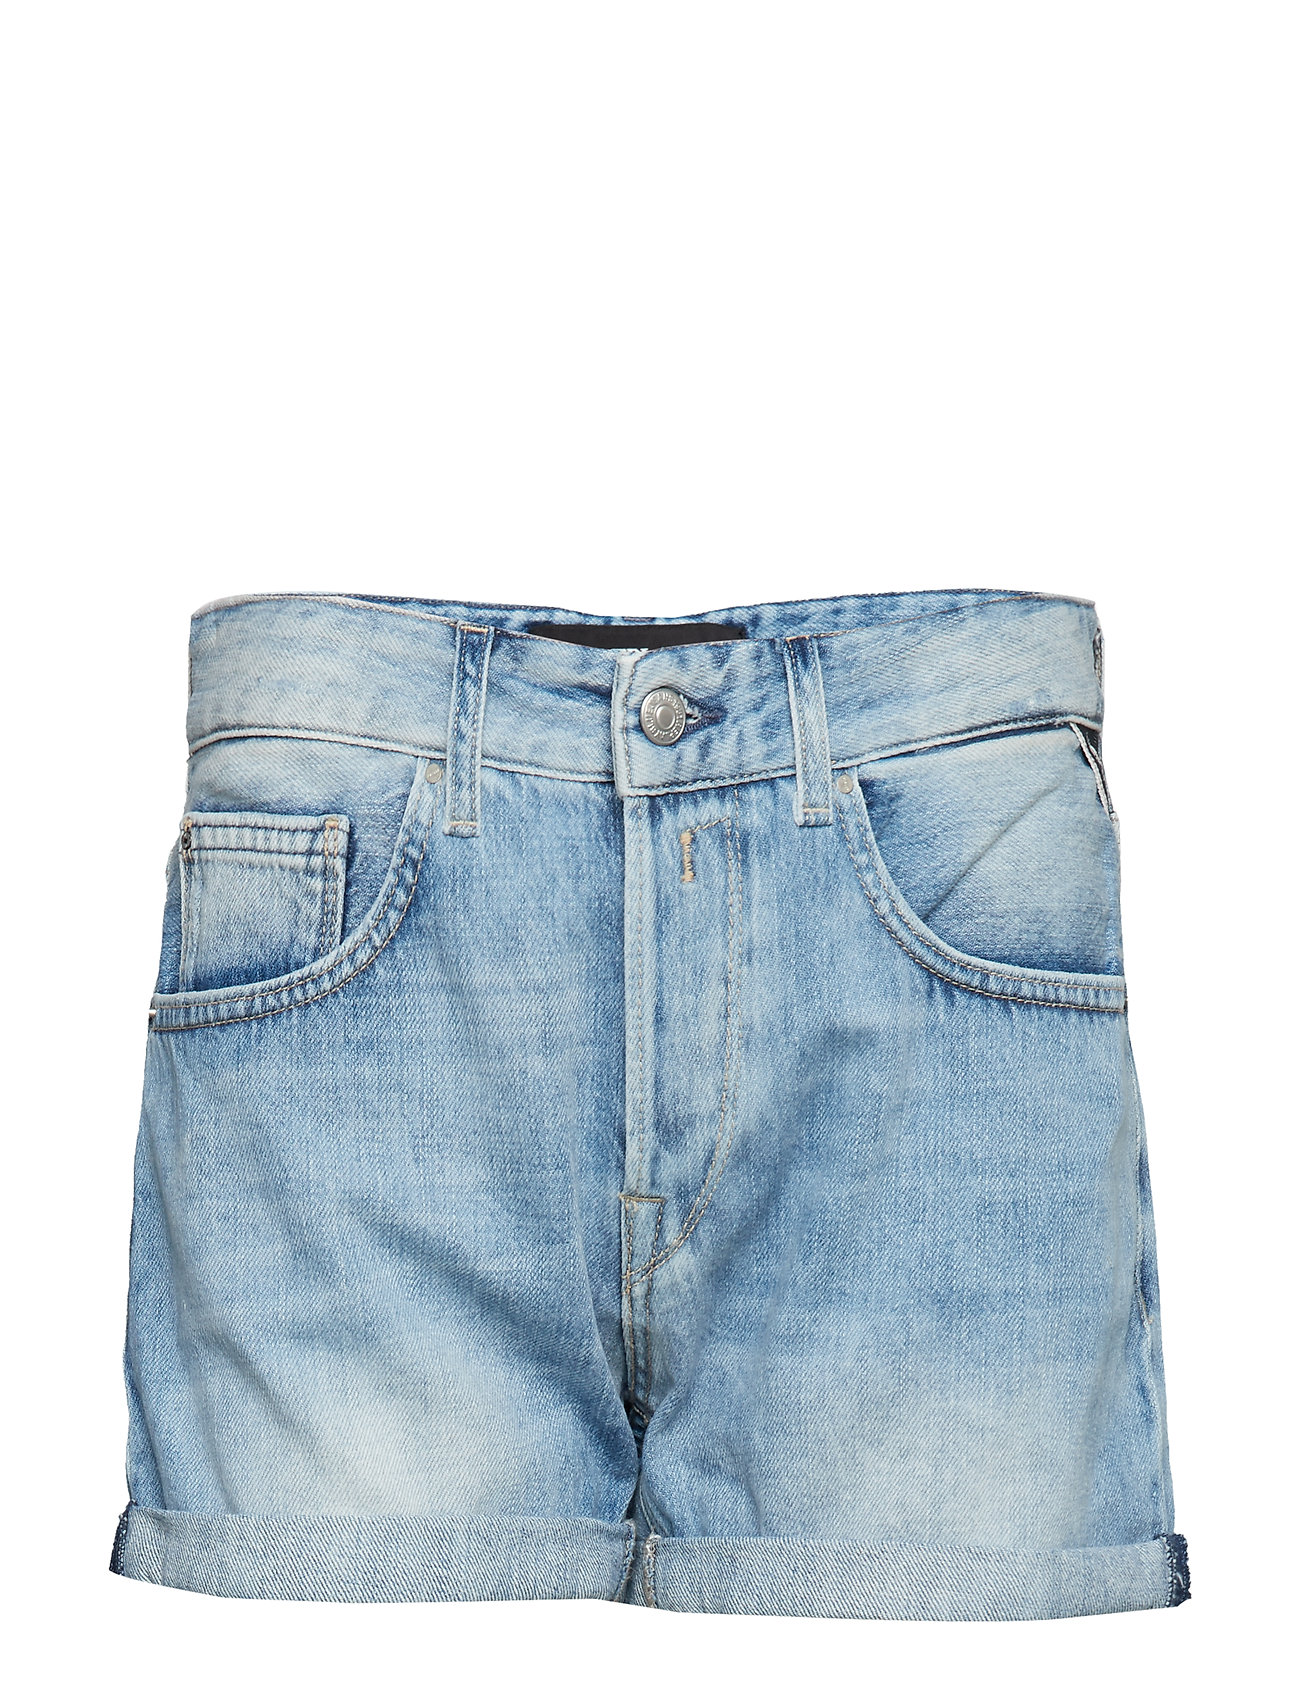 Replay Denim Shorts - LIGHT BLUE